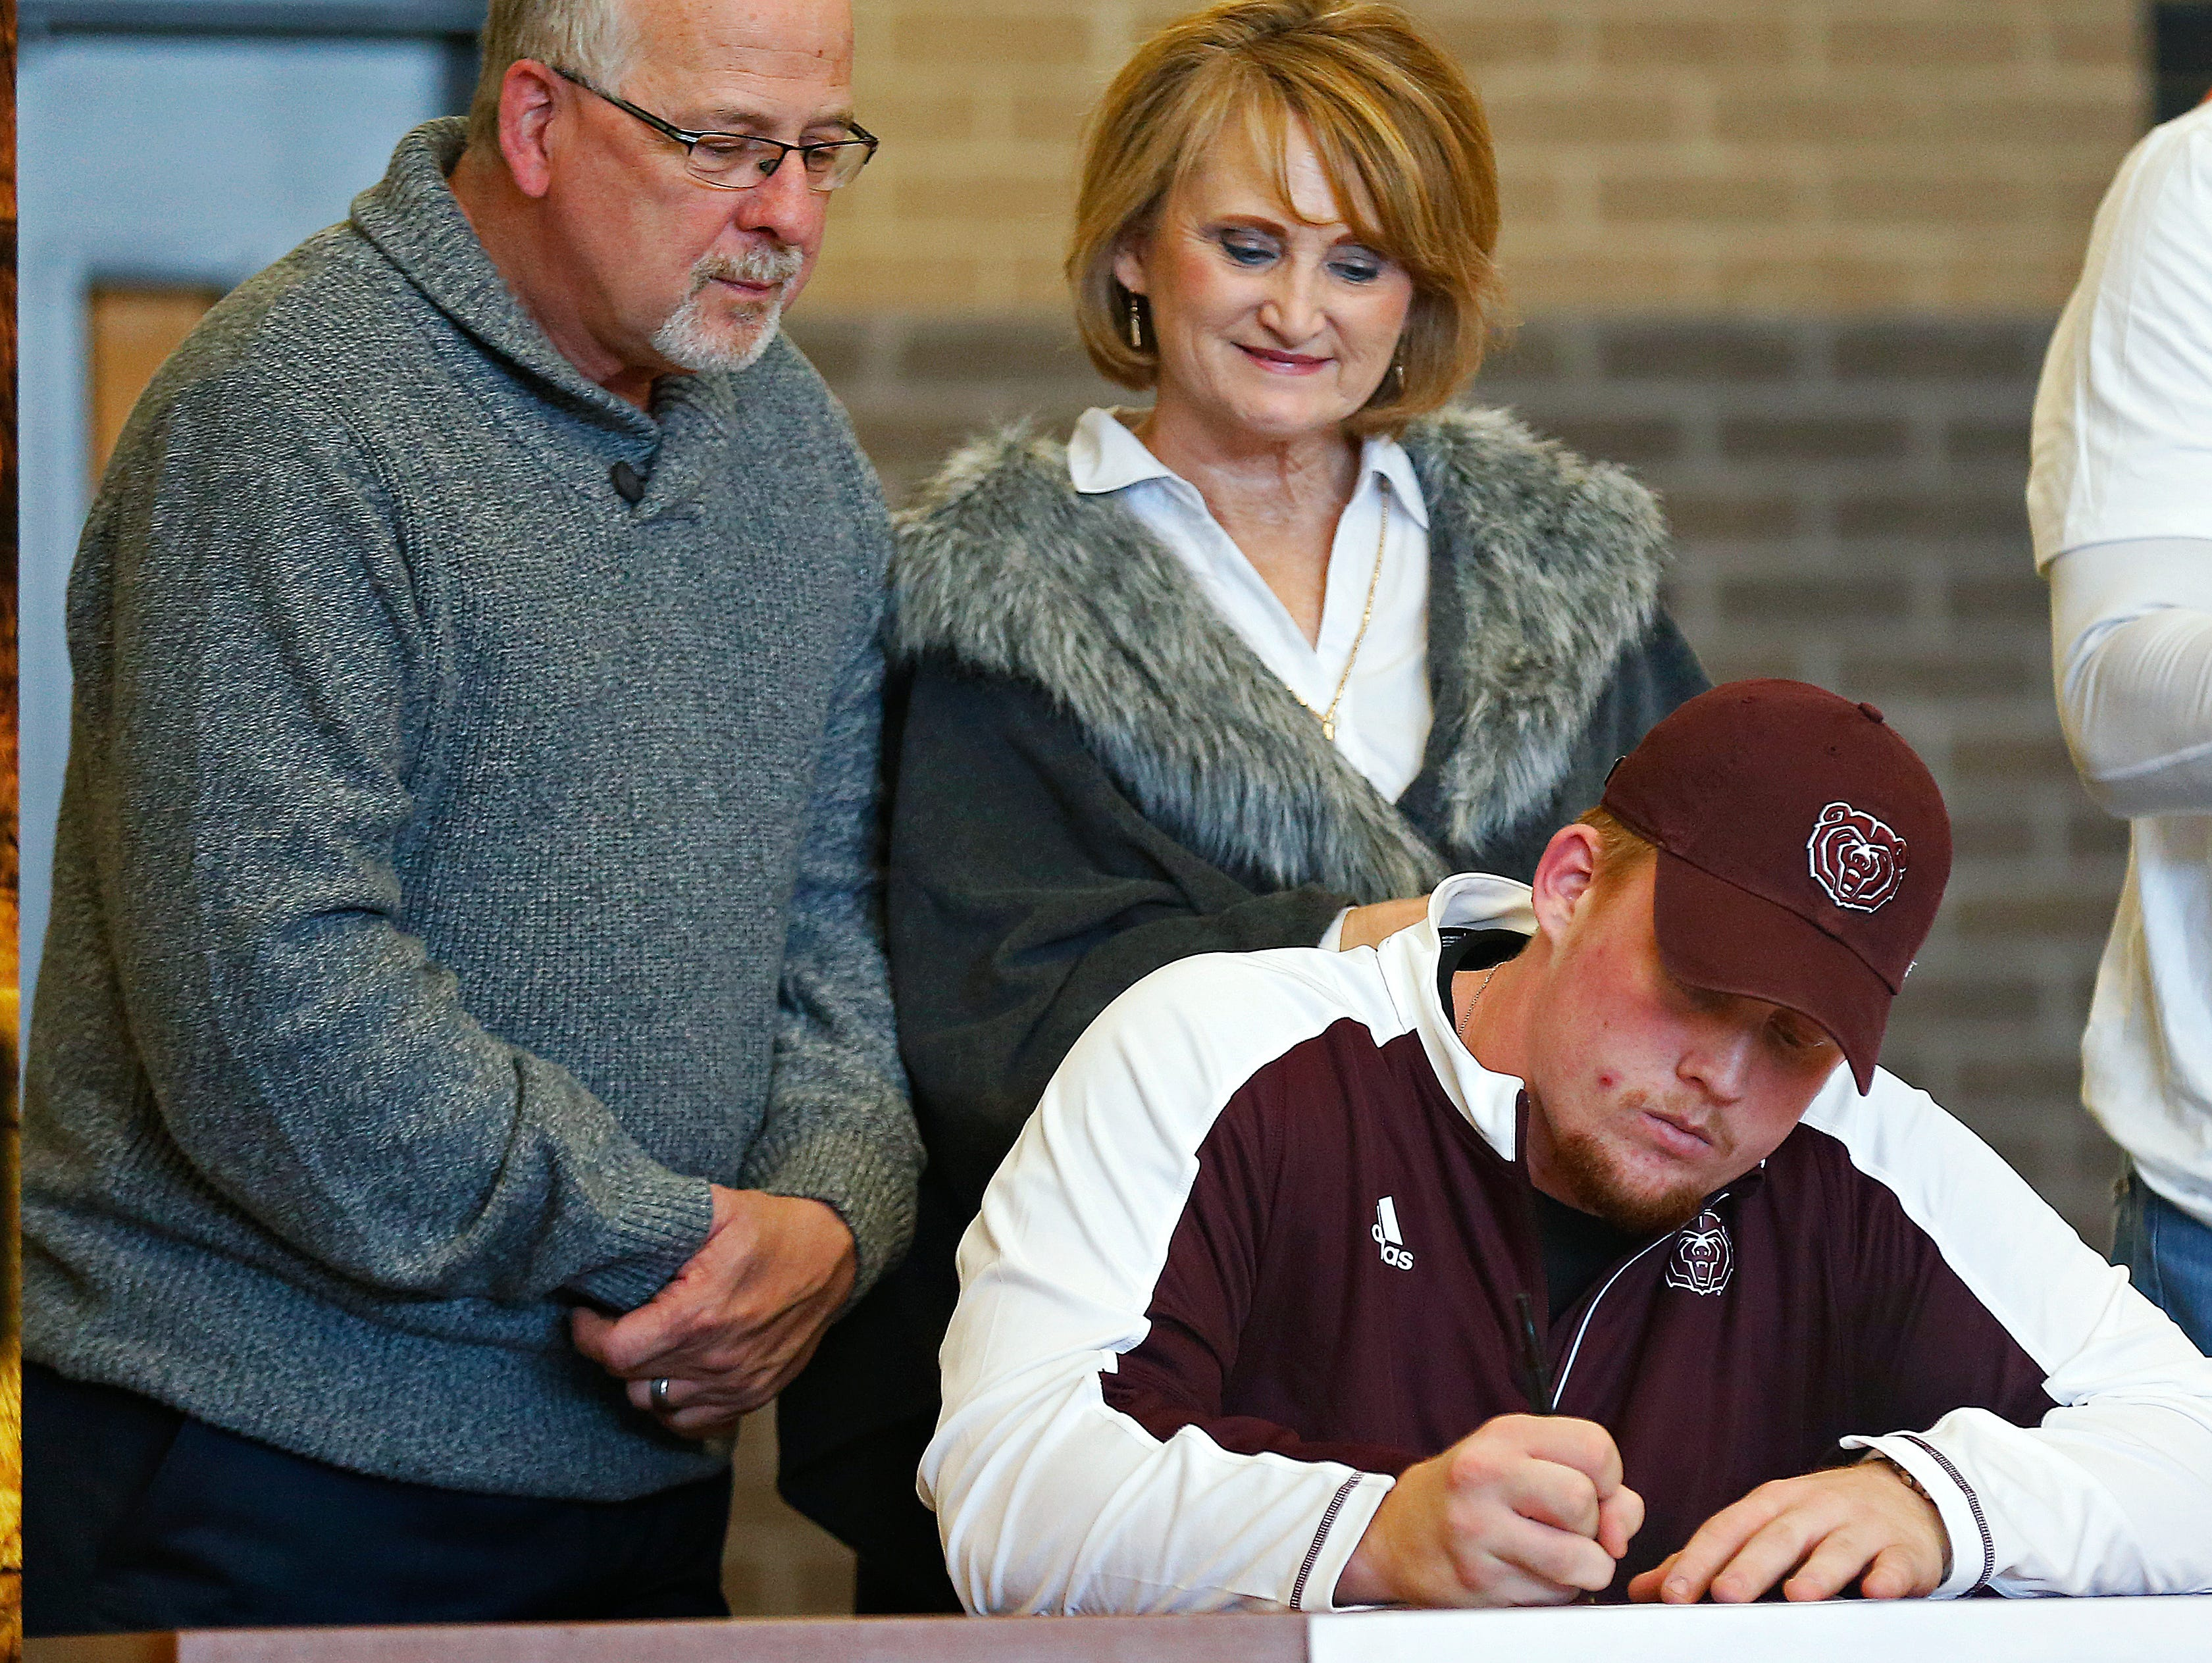 Grant Martin signs a national letter of intent to Missouri State University during a National Signing Day ceremony held at Kickapoo High School in Springfield, Mo. on Feb. 1, 2017.